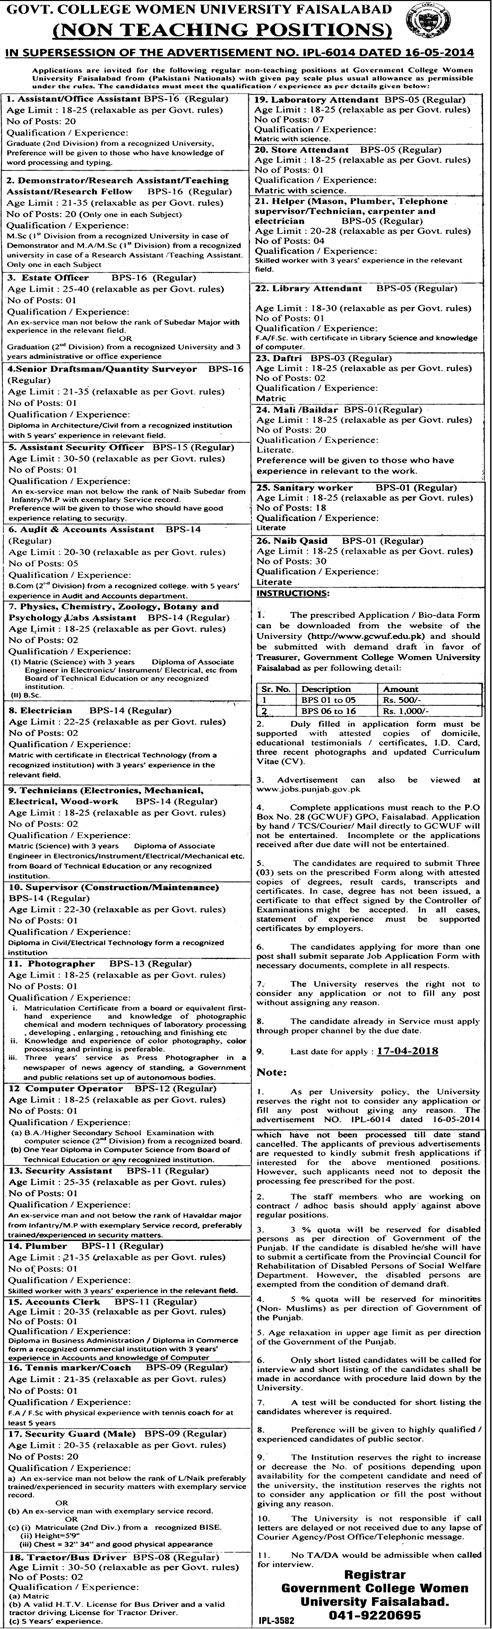 Government College Women University Faisalabad 168 Jobs Daily Jang Newspaper 26 March 2018